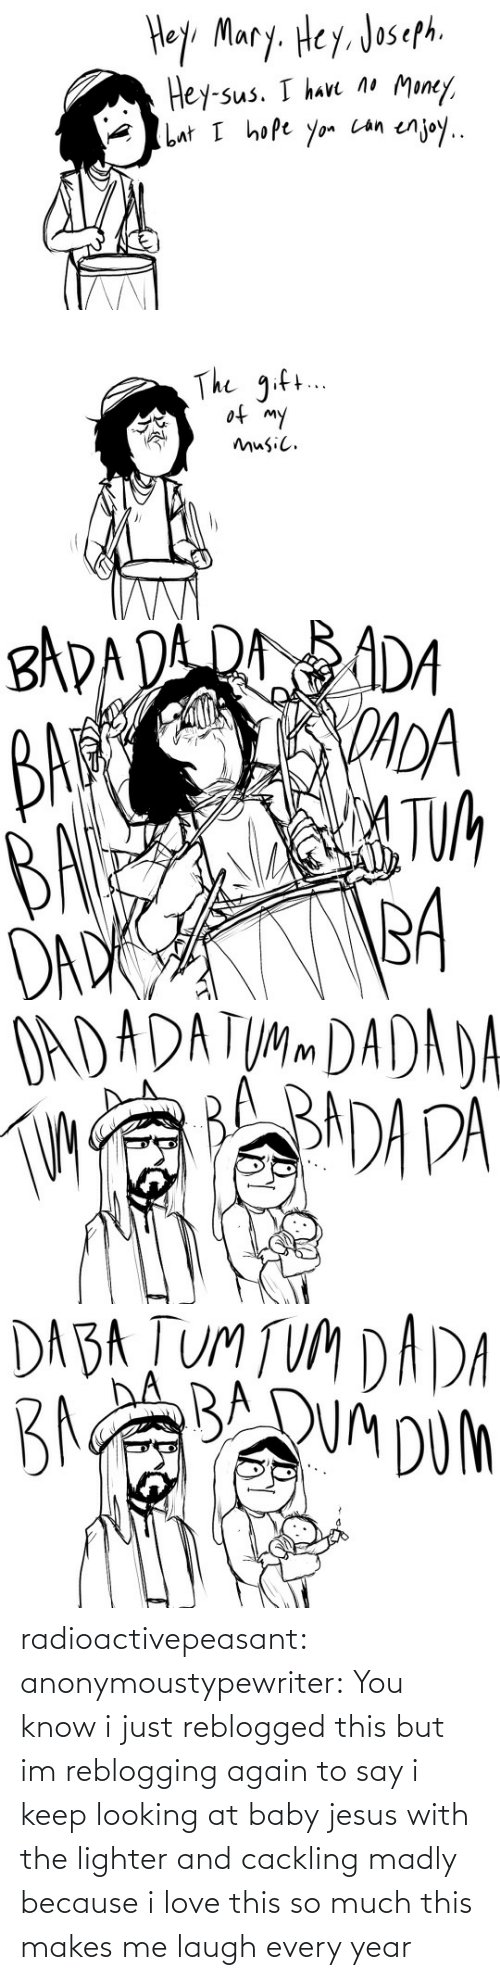 Dad, Jesus, and Love: Hey Mary. Hey. Joseph.  Money,  Hey-sus. I have no  enjoy..  but I hope yon Lan   The gift..  of my  music.   BADADA ROADA  BAR  DADA  BA TUA  BA  DAD   OADADATUMM DADADA   DA BA TUM TUM DADA  BAABQUM DUMh radioactivepeasant:  anonymoustypewriter: You know i just reblogged this but im reblogging again to say i keep looking at baby jesus with the lighter and cackling madly because i love this so much this makes me laugh every year